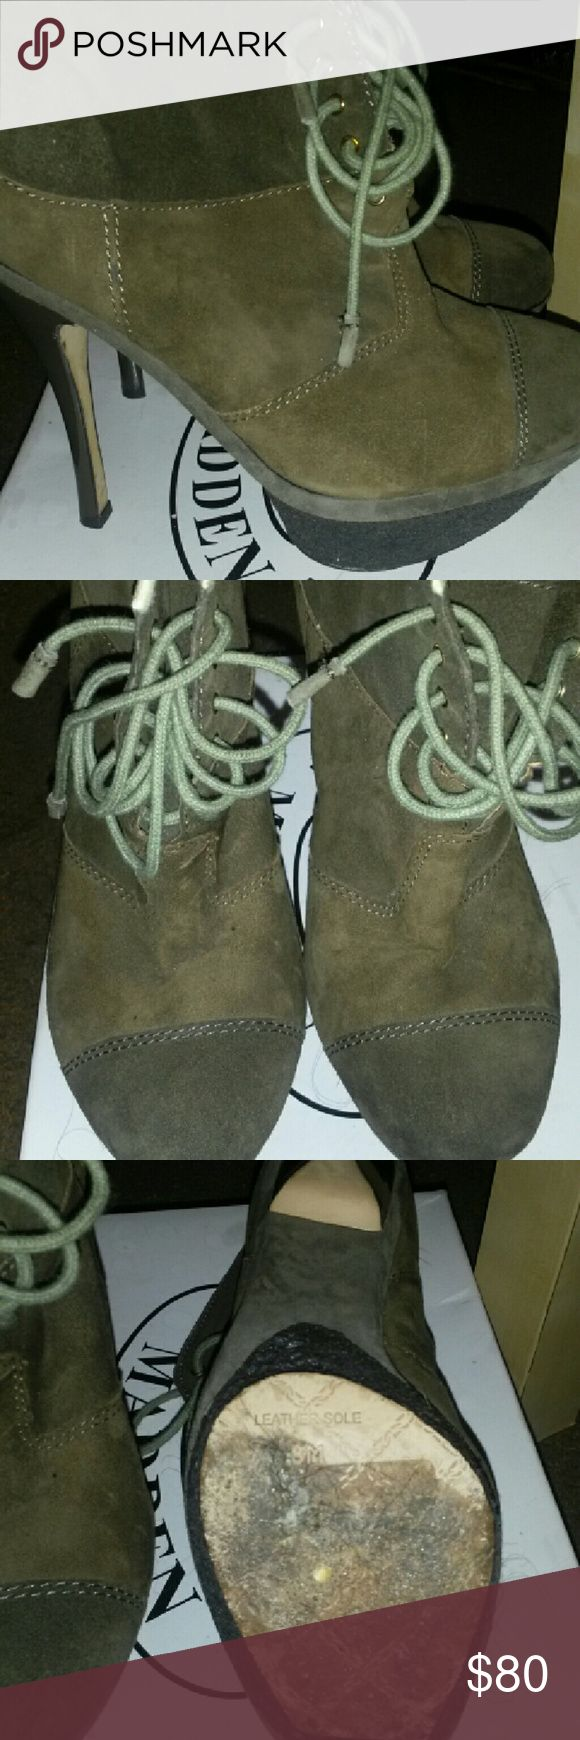 Gwen Stefani suede booties They have been altered. Fur removed from rim LAMB Shoes Ankle Boots & Booties